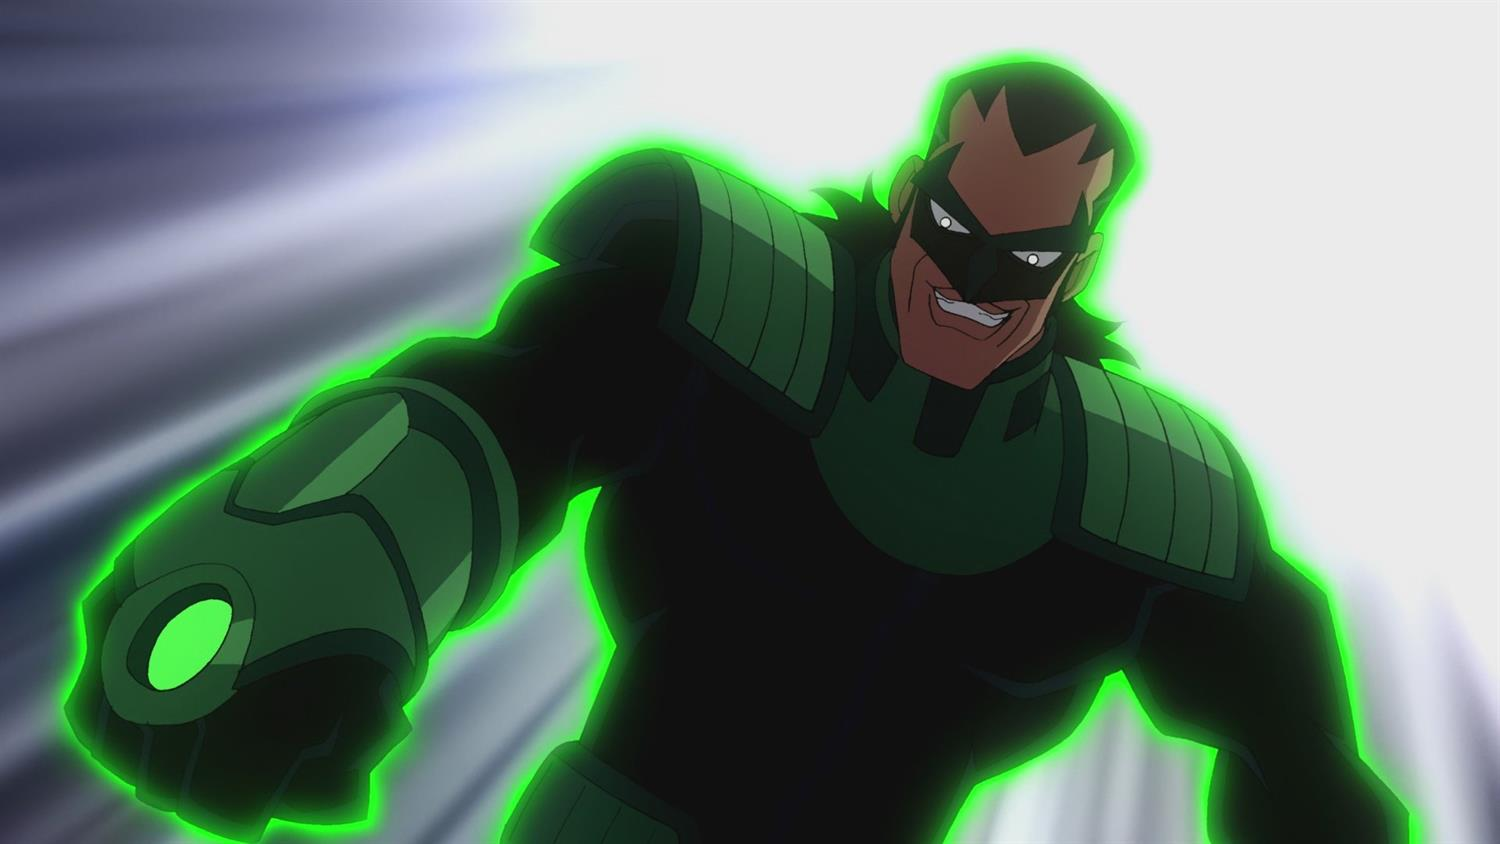 An Action-packed look at 10 years of DC Animated Movies